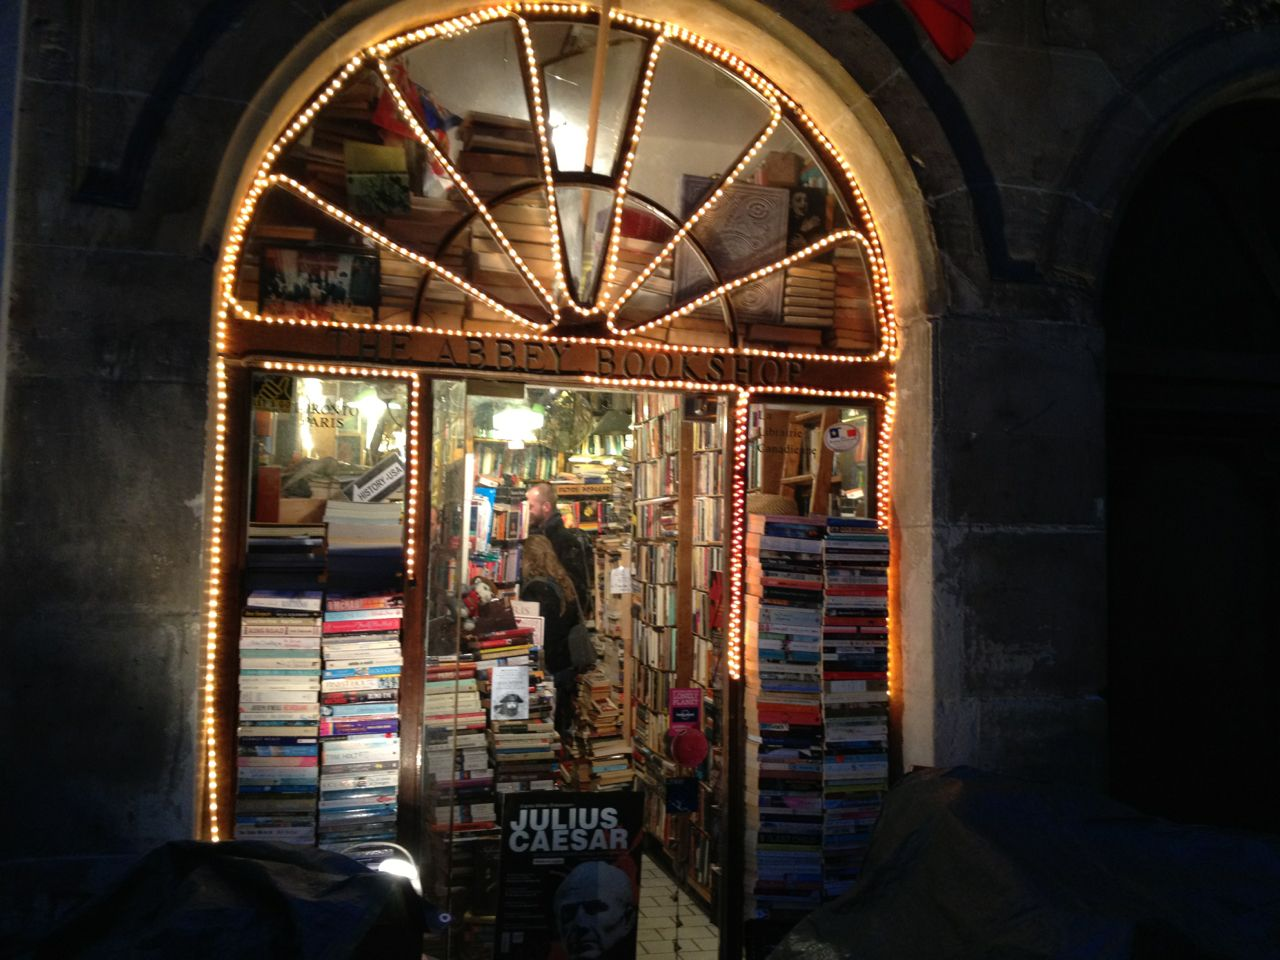 My favourite bookshop in Paris is a tiny Canadian bookshop in the Parcheminerie Street : The Abbey Bookshop. The place is magical and you're sure to be well greeted by a mapple sirup coffee/tea offered by the owner or the very nice girl working here. They sell many English and American litterature and more specific books on Canada.